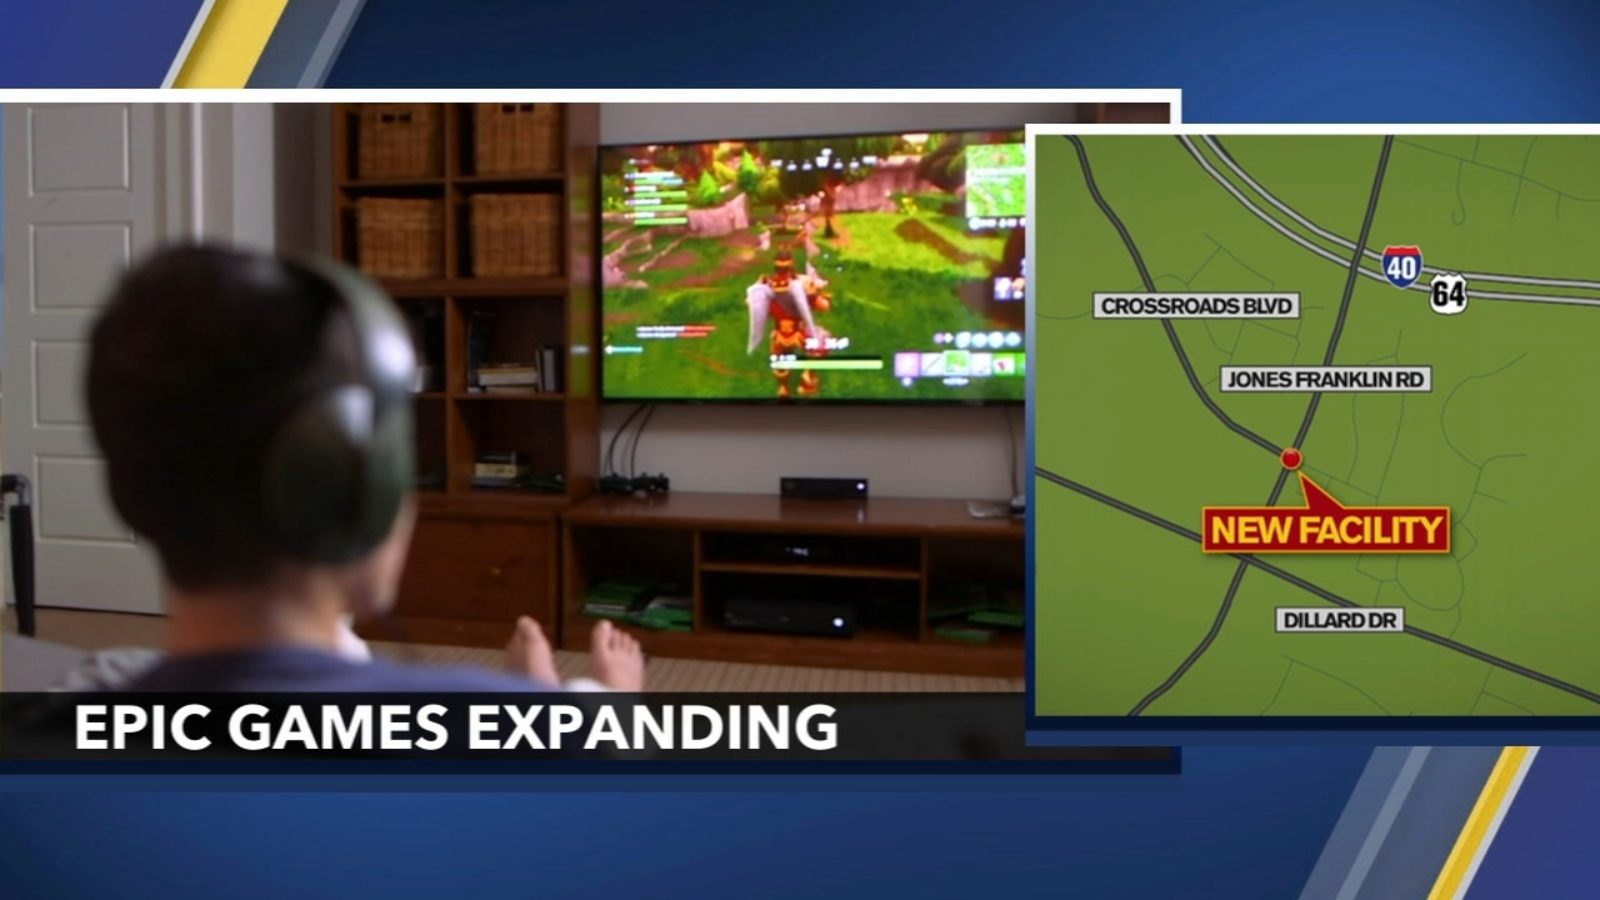 Epic Games announces expansion of Cary headquarters ...